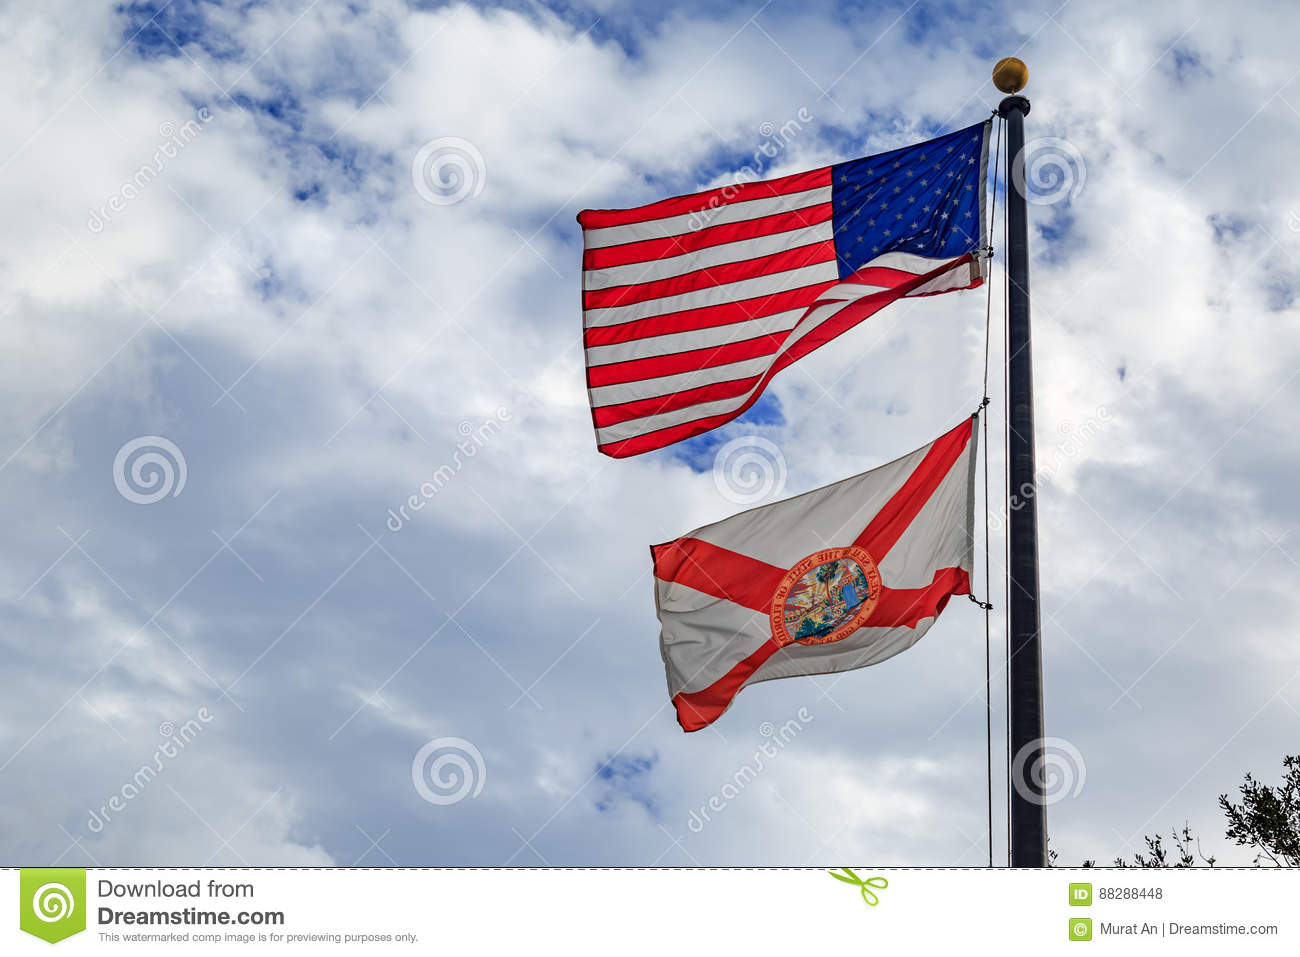 Florida state flag with american flag